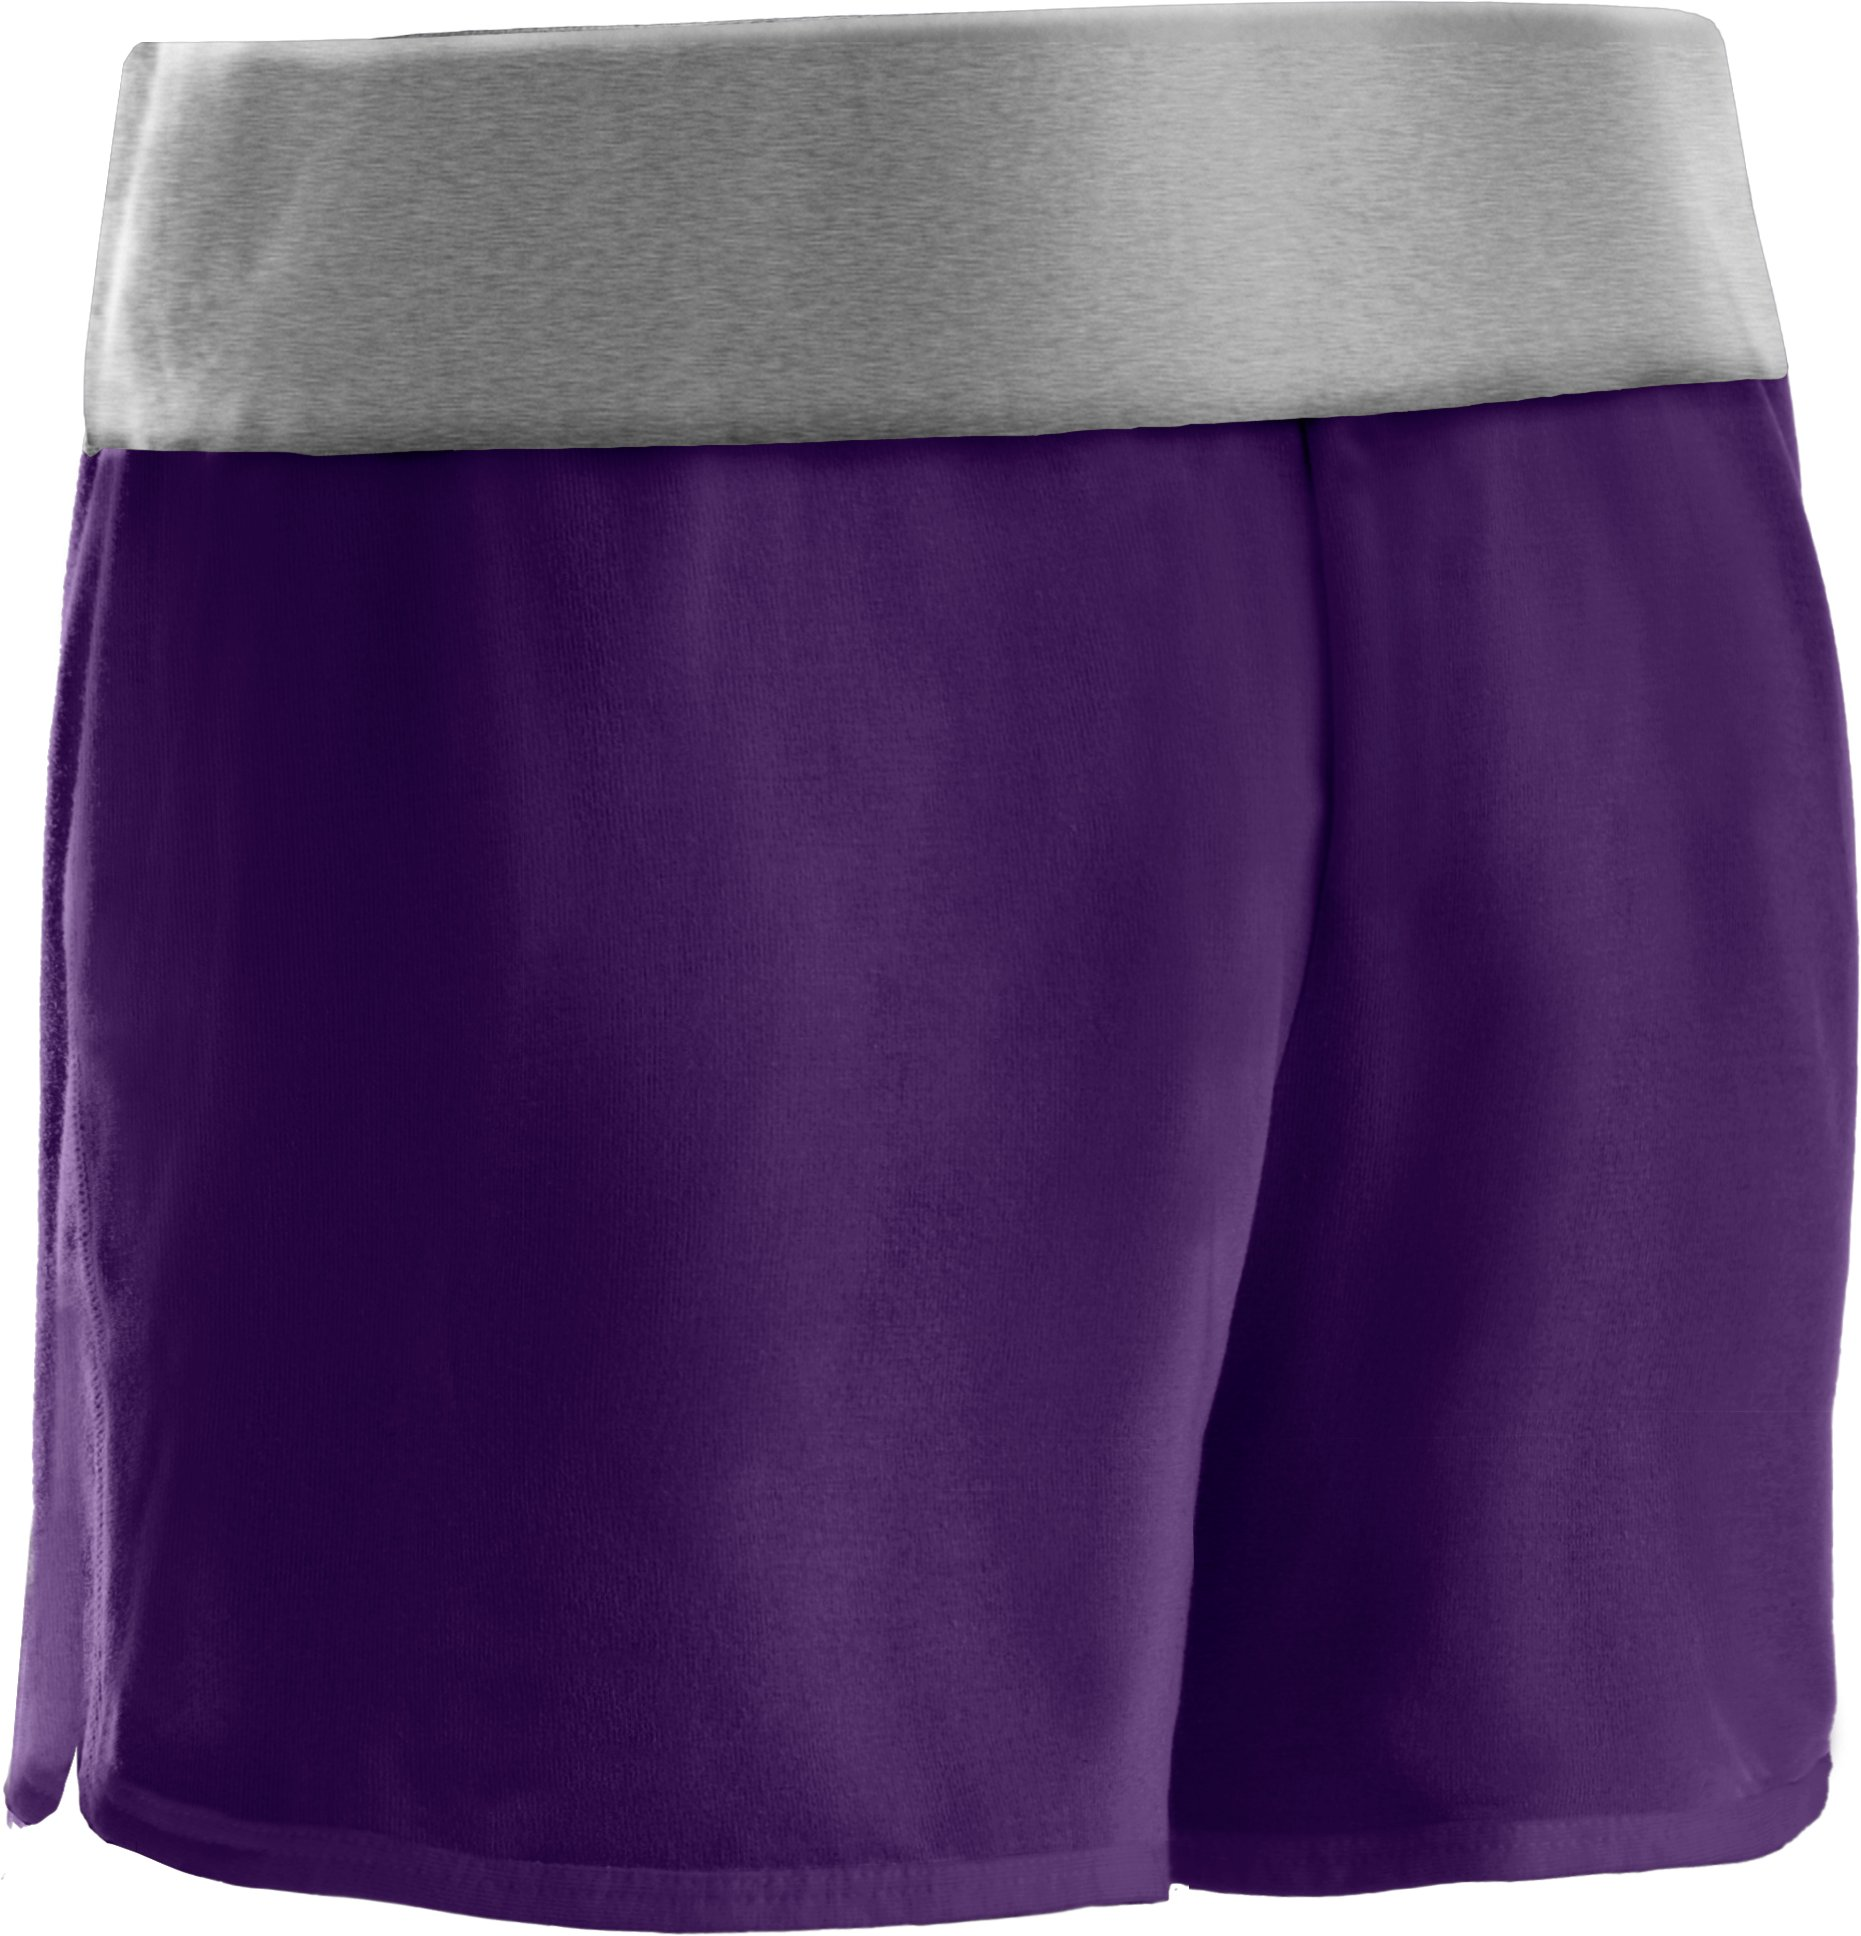 Girls' Charged Cotton® Short, Shift, undefined